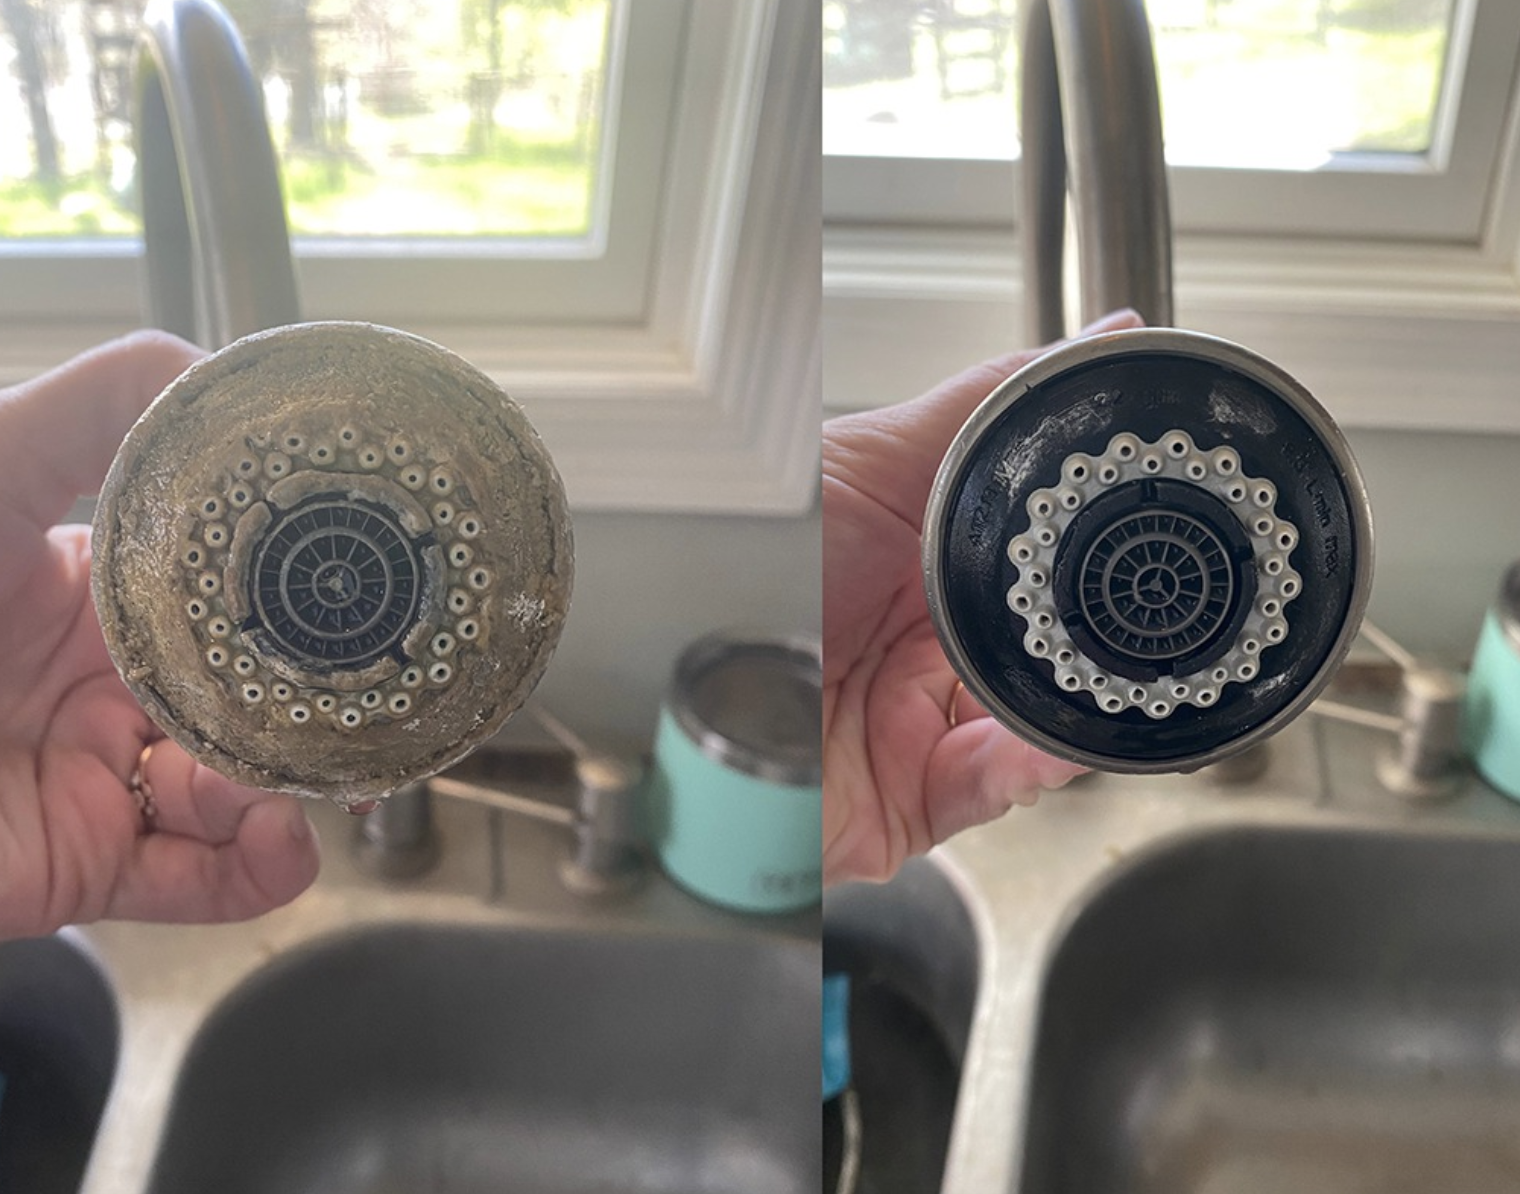 reviewer sink faucet with hard water build-up on left and looking completely clean on right